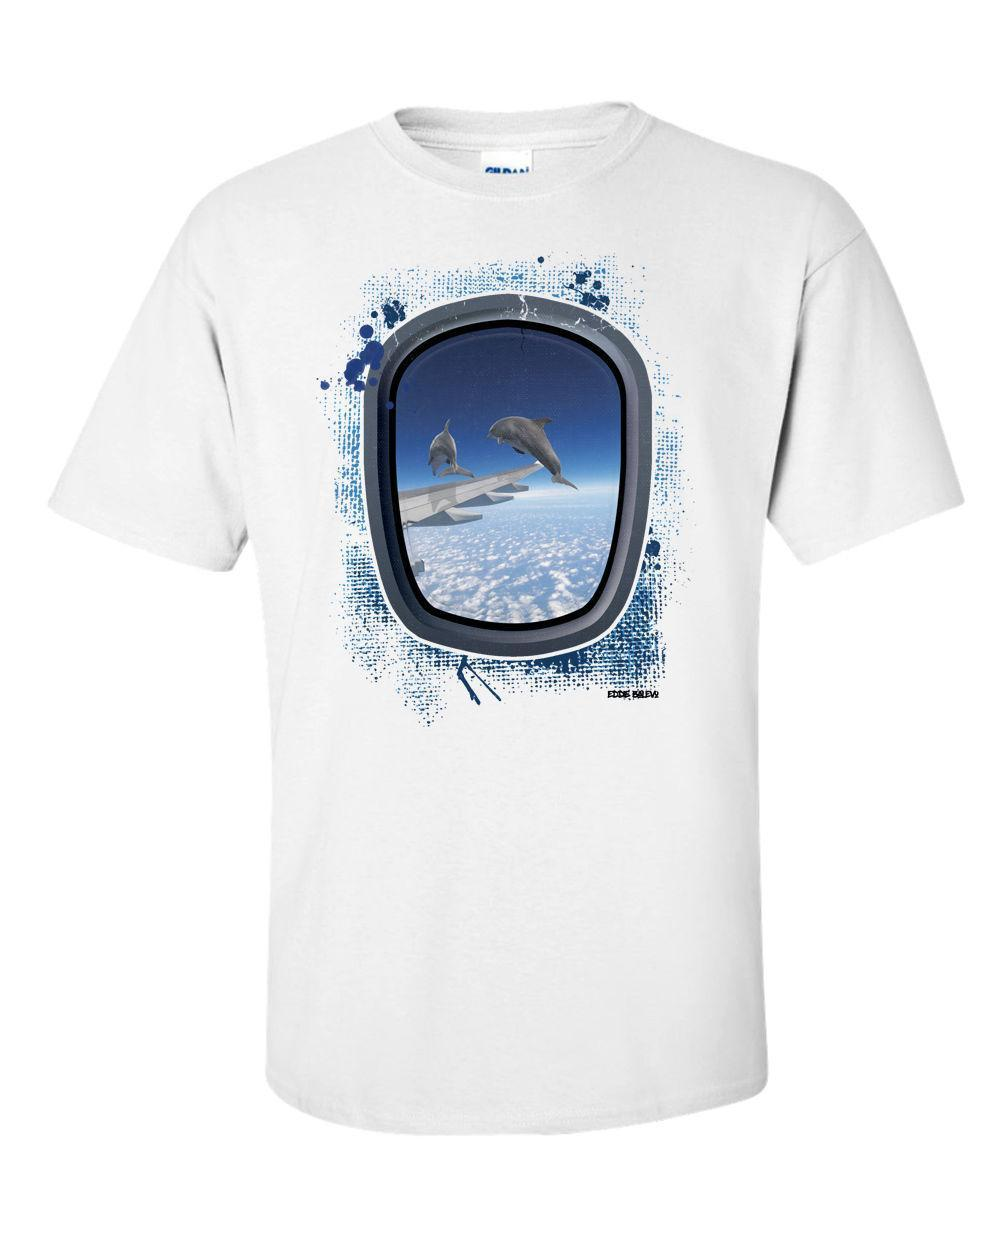 fef1406862 Dolphins T Shirt Surreal Art Funny Airplane Dive Swim Vintage YOLO Gift Tee  New T Shirts T Shirts T Tee Shirts From Amesion98, $12.08  DHgate.Com